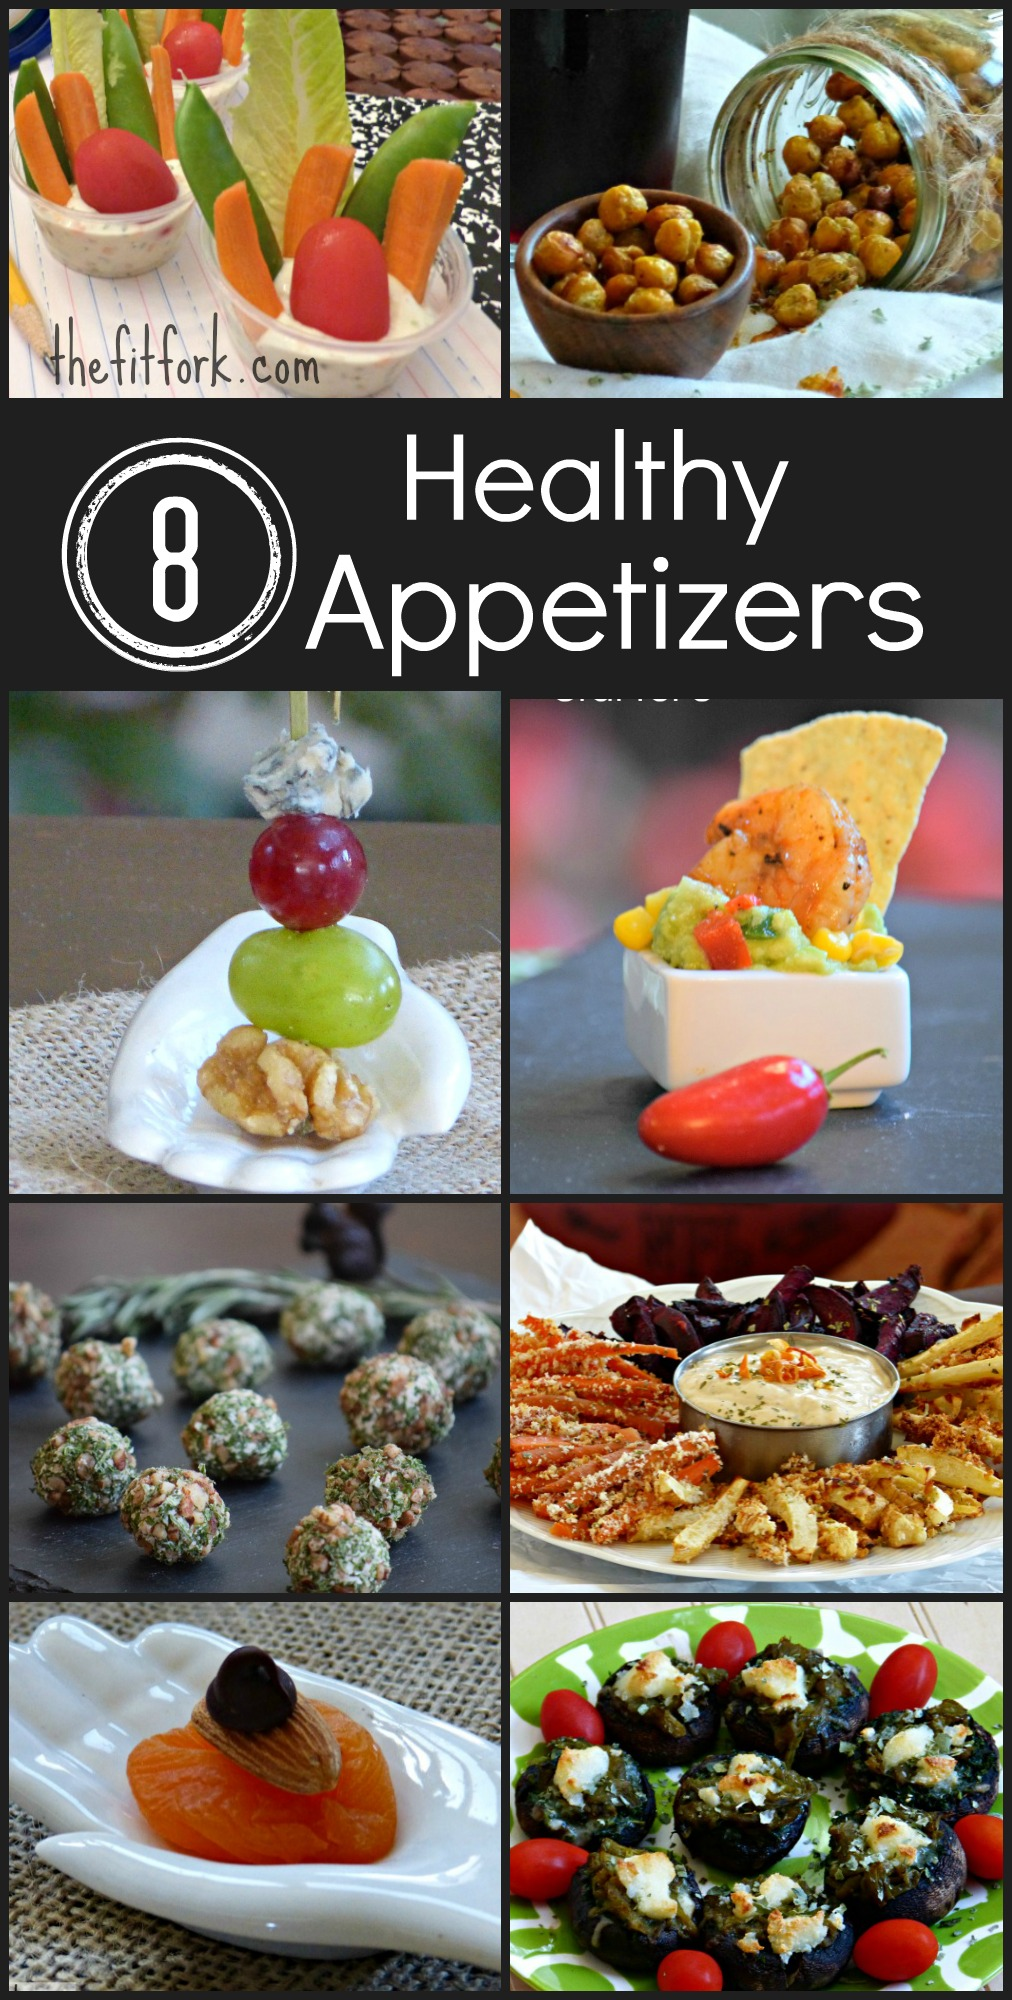 Eight Healthy Appetizers - TheFitFork.com